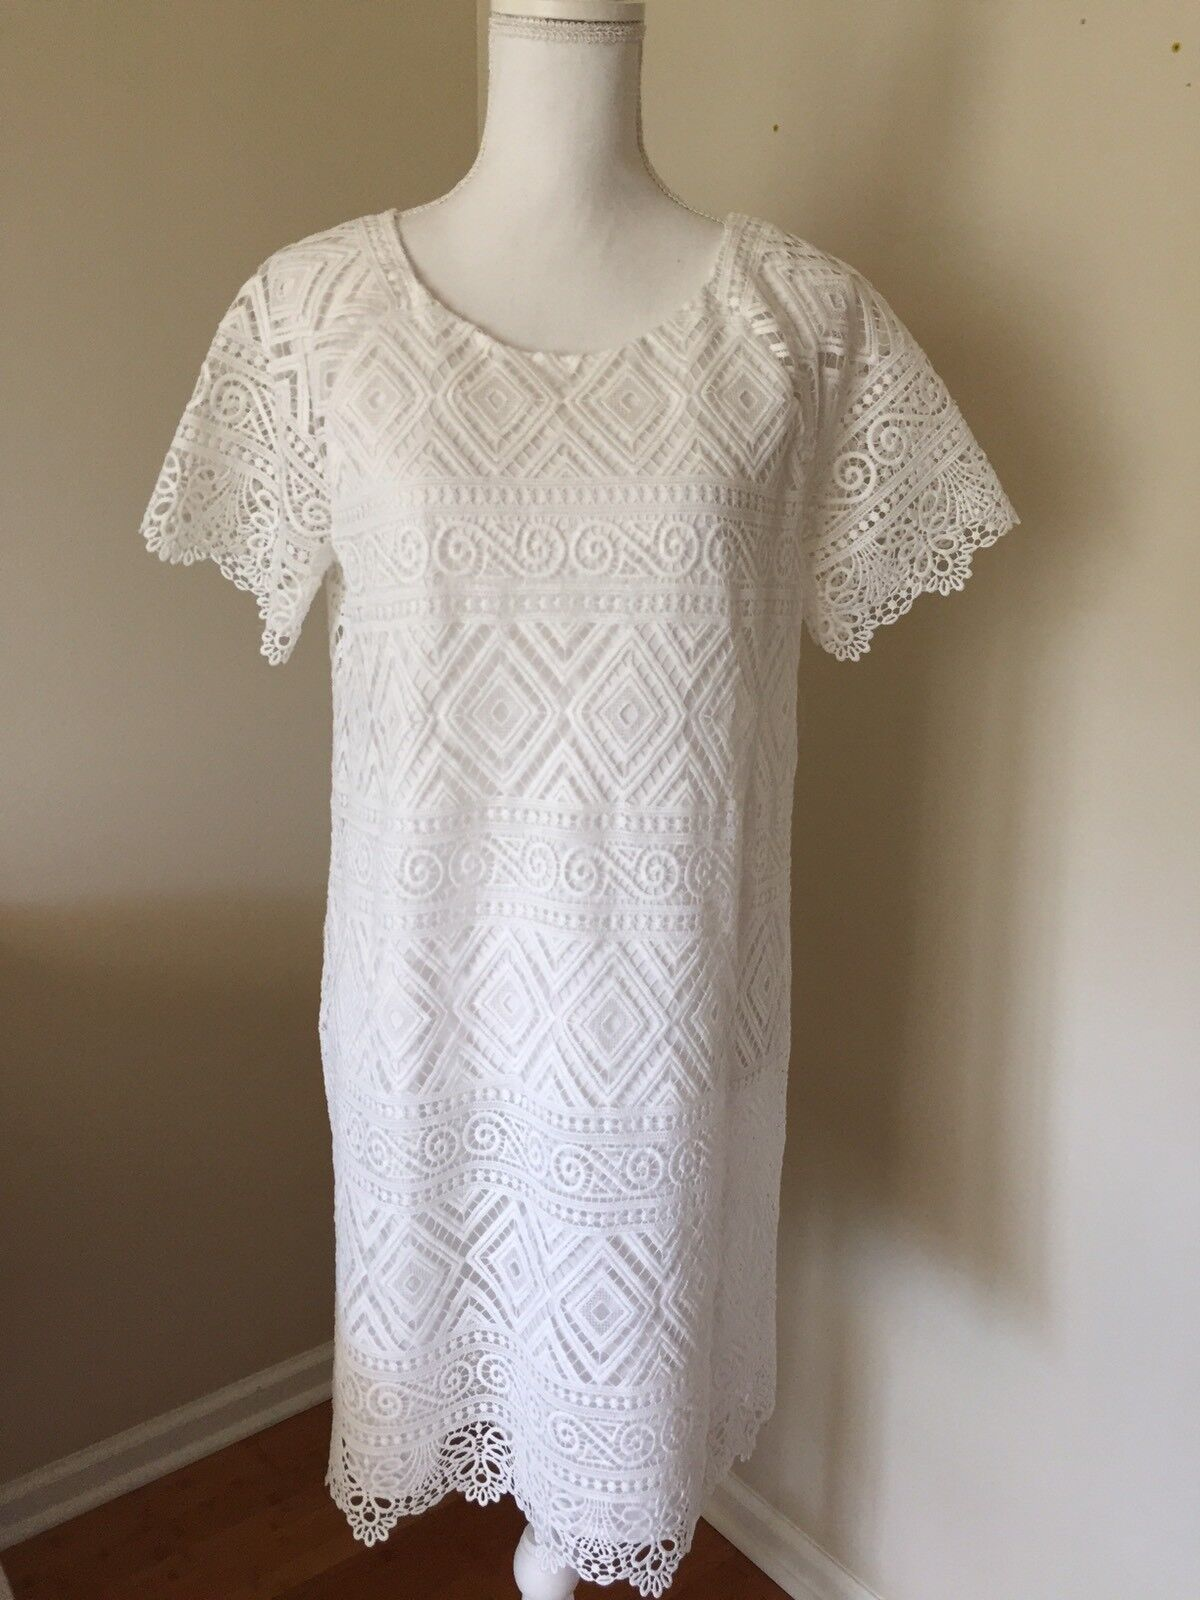 Madewell JCREW New Lace Lyric Dress Weiß Größe 10 E8130  158 SOLD OUT